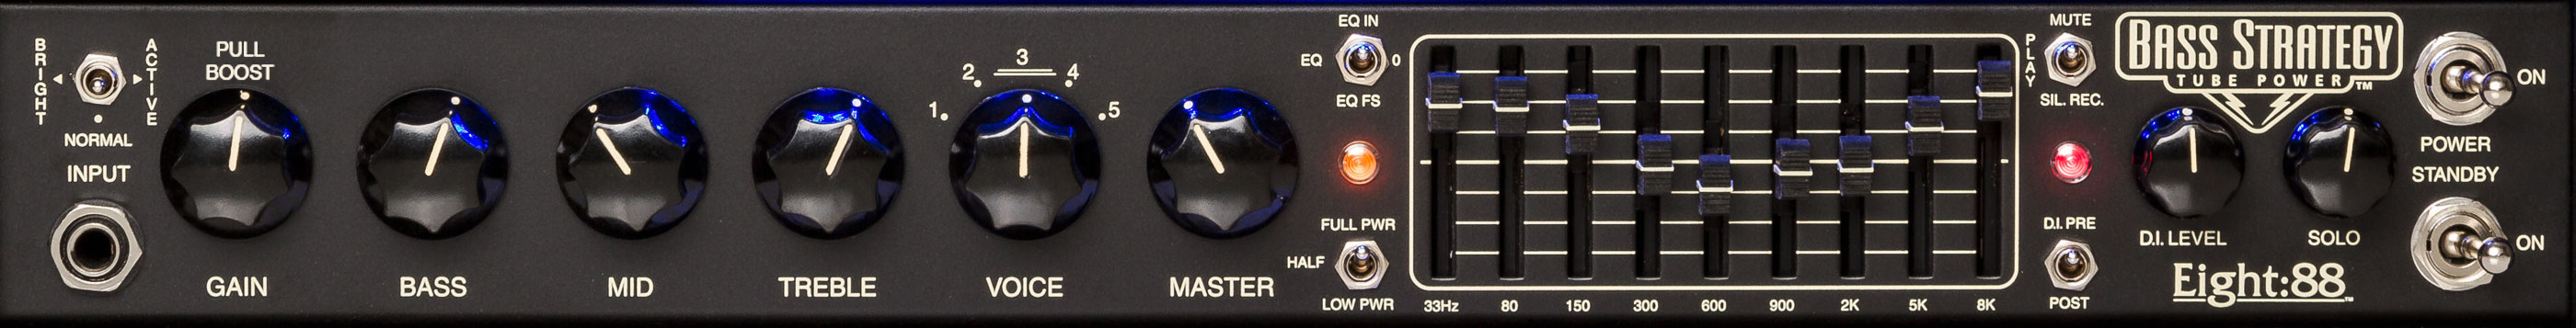 Bass Strategy Front Panel Detail